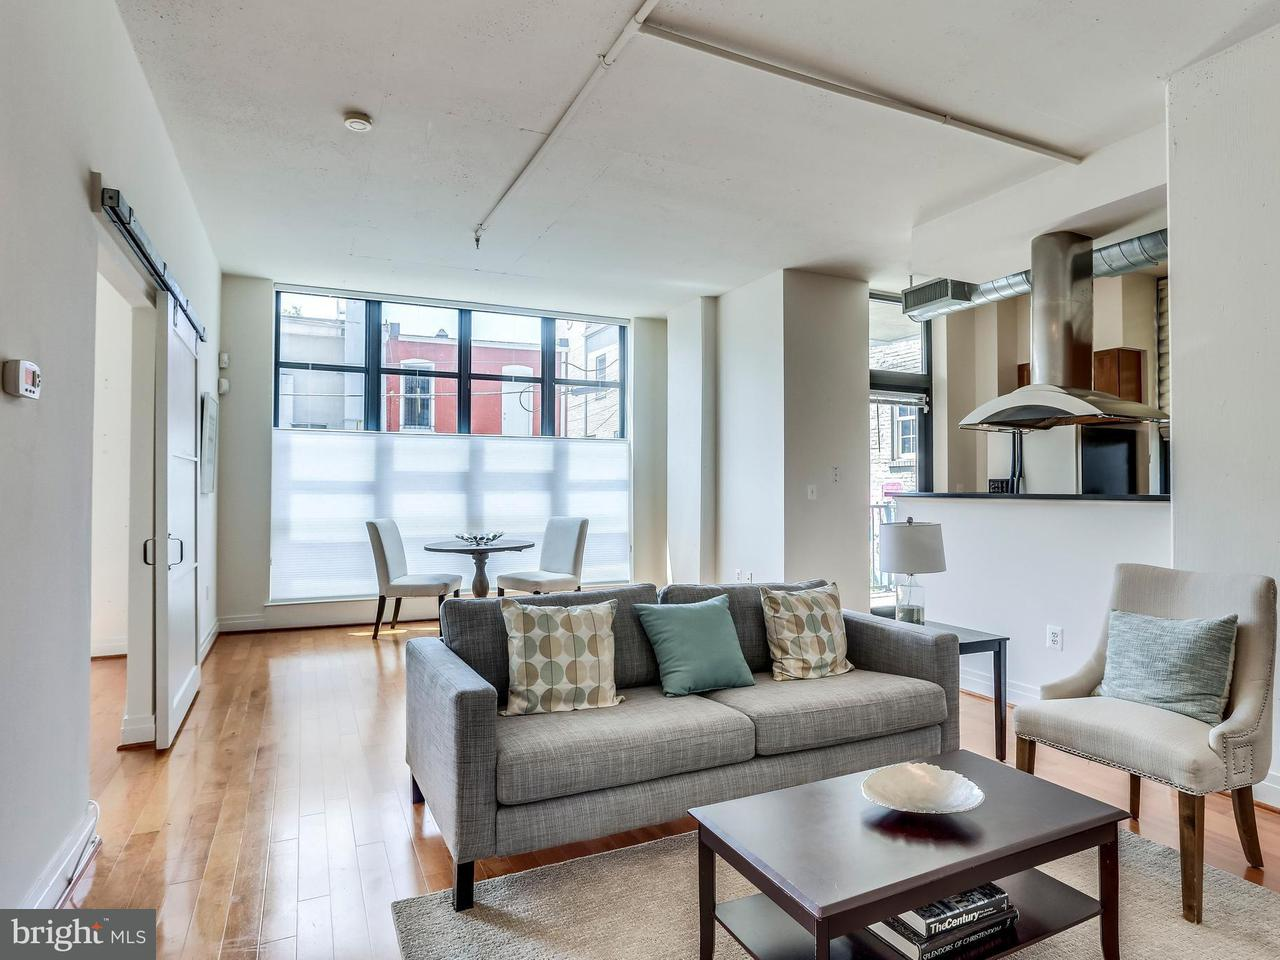 Single Family for Sale at 2020 12th St NW #116 Washington, District Of Columbia 20009 United States